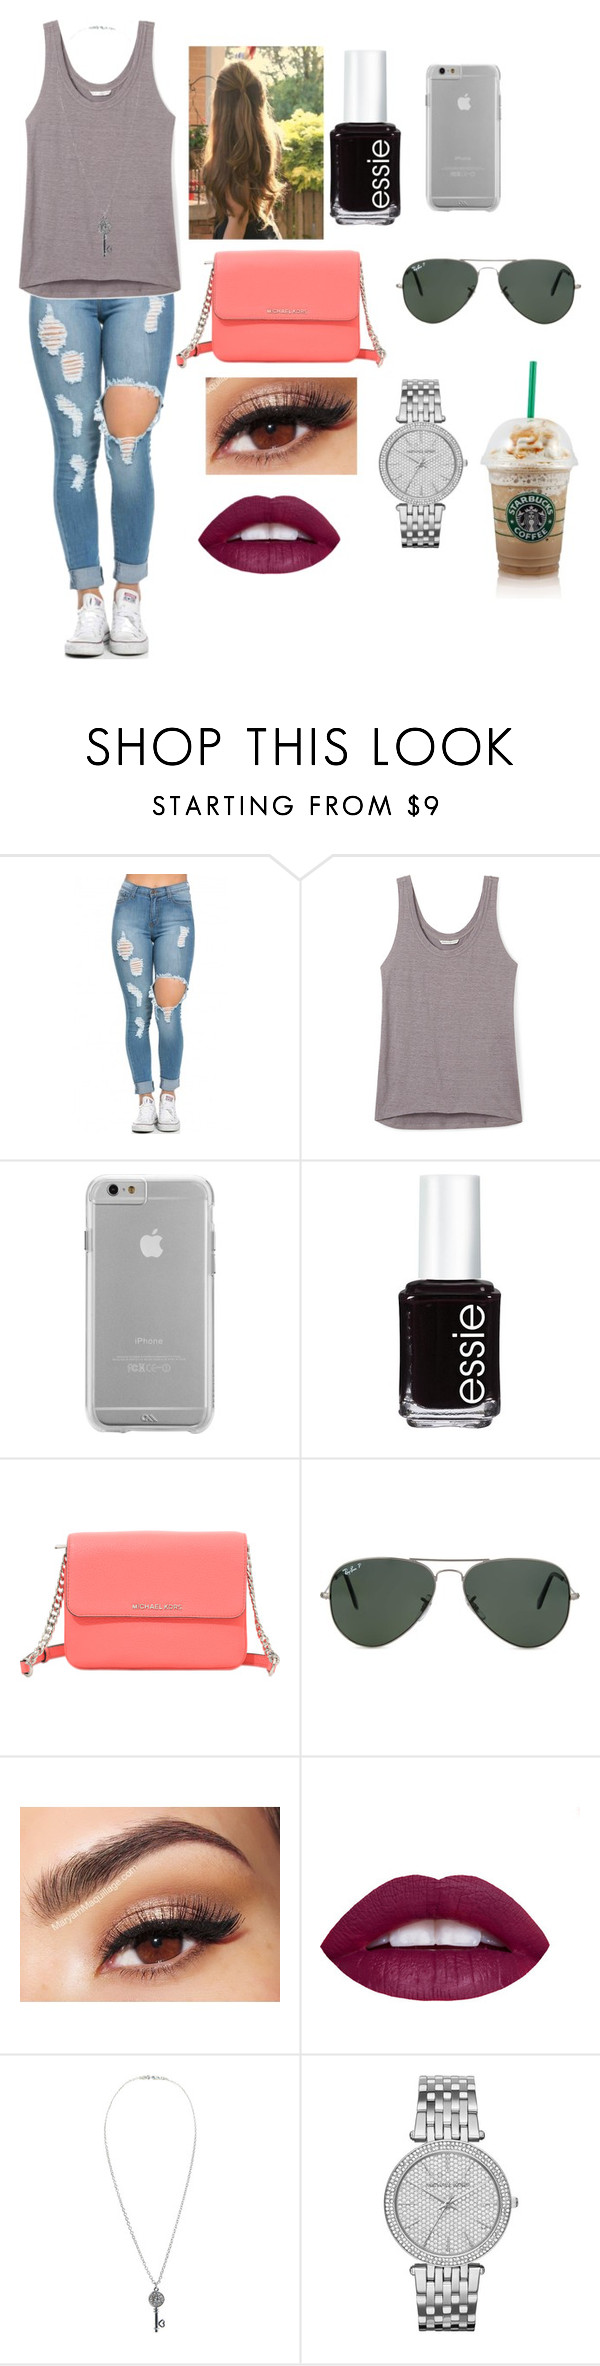 """""""Untitled #736"""" by amarianamichelle ❤ liked on Polyvore featuring mode, Rebecca Minkoff, Case-Mate, Essie, Michael Kors, Ray-Ban, Lancôme, Aéropostale, starbucks et lazy"""